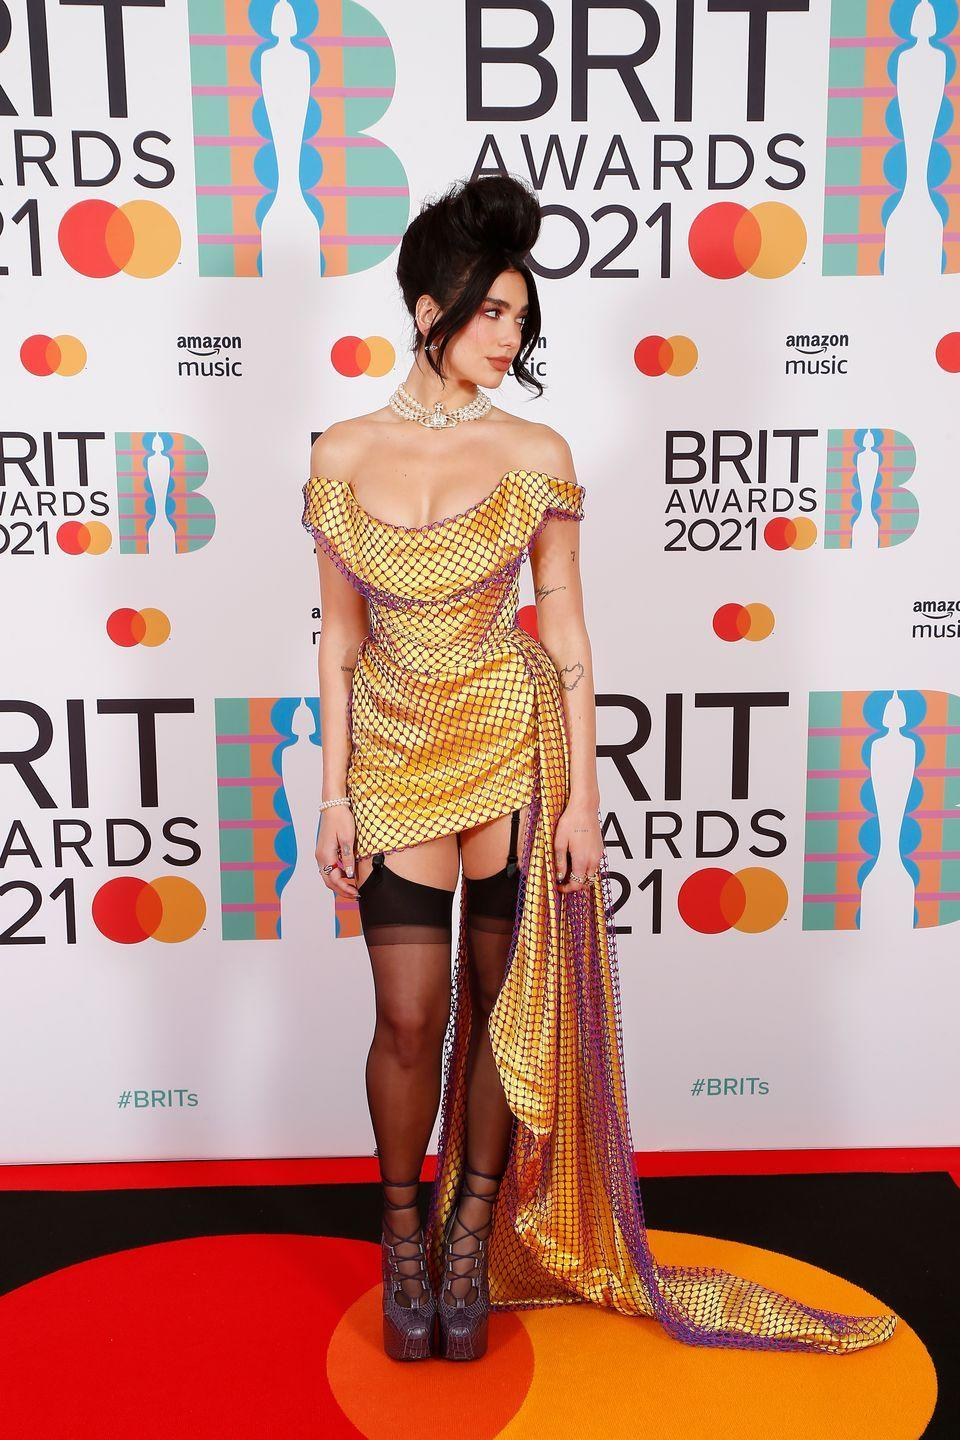 <p>Dua Lipa embraced Vivienne Westwood's trademark corset silhouette for the occasion. The singer teamed the off-the-shoulder mini dress with suspender stockings and lace-up platforms.</p>